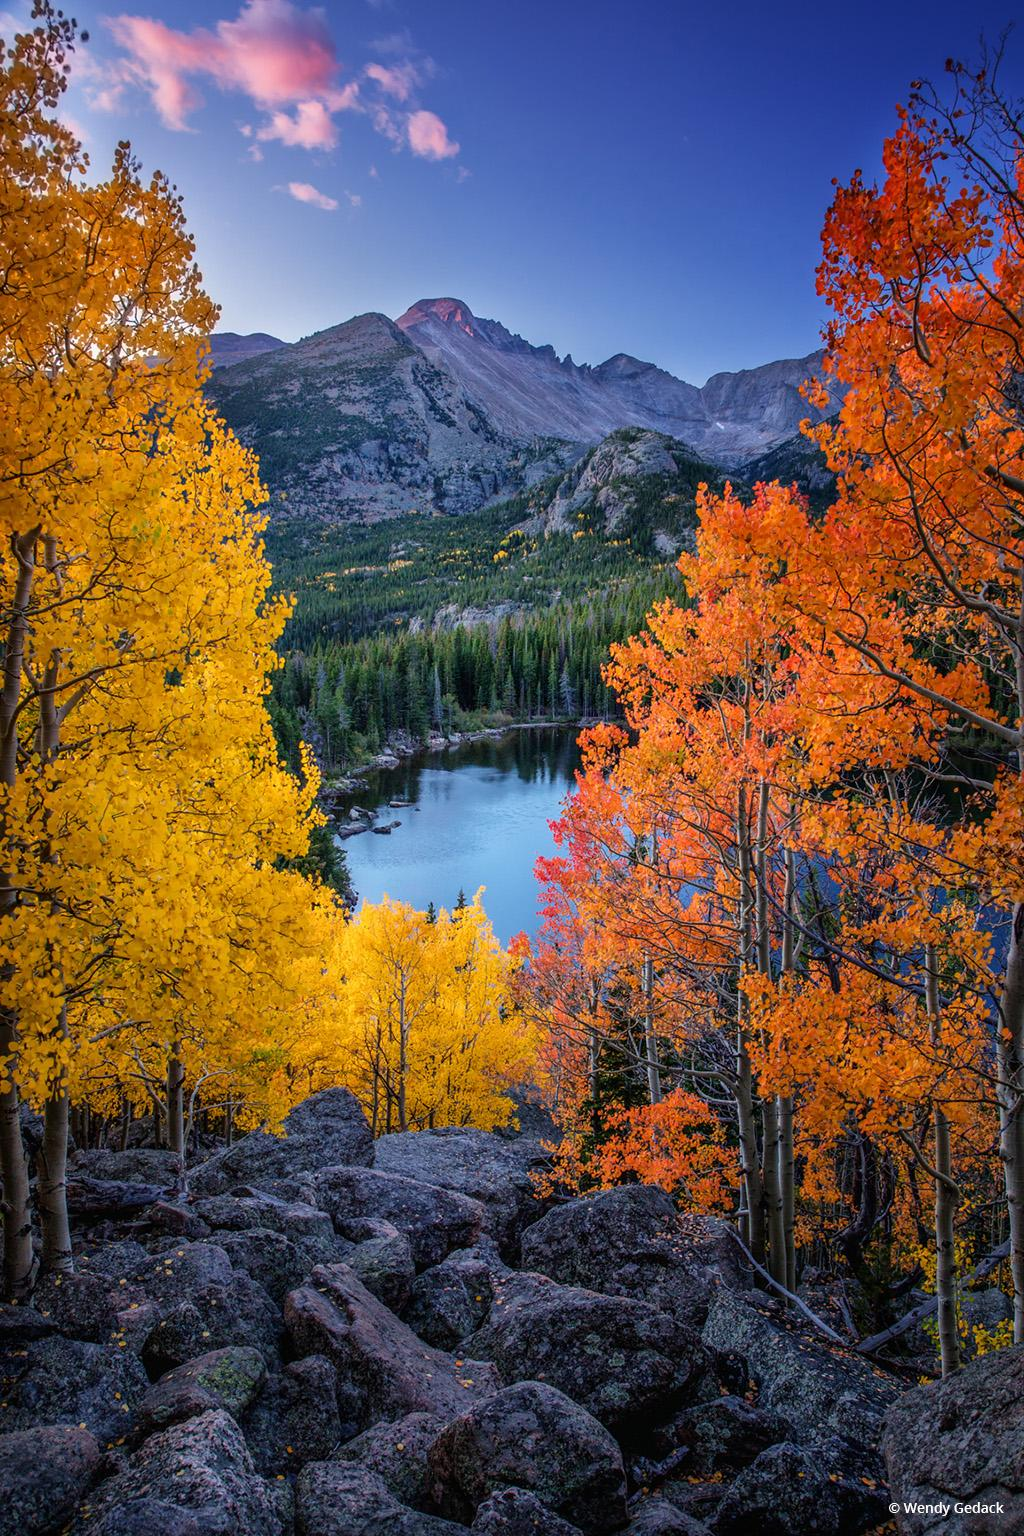 """Today's Photo Of The Day is """"Absorb Every Moment of Wonder"""" by Wendy Gedack. Location: Rocky Mountain National Park, Colorado."""